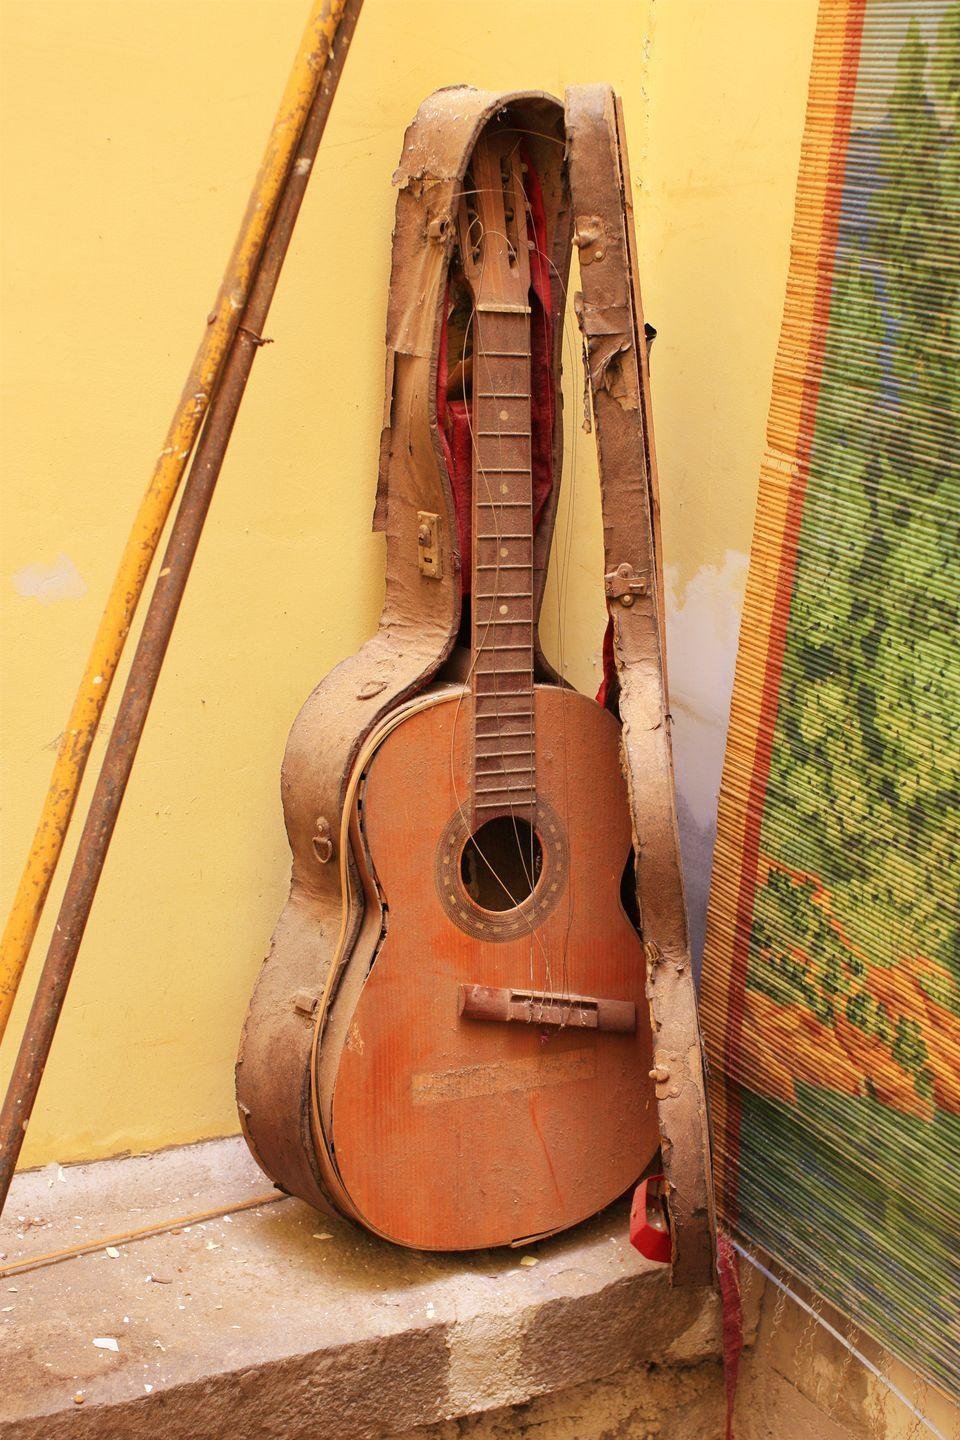 "<p>You probably wouldn't throw away a beautifully made musical instrument, but if you don't want it sitting in your basement—and the damp hasn't gotten to it—you might be able to sell it. If it's a <a href=""https://www.cnbc.com/2010/10/15/Ten-Most-Valuable-Musical-Instruments.html"" rel=""nofollow noopener"" target=""_blank"" data-ylk=""slk:Stradivari violin or a Fender Stratocaster guitar"" class=""link rapid-noclick-resp"">Stradivari violin or a Fender Stratocaster guitar</a>, it could be worth hundreds of thousands or even millions.</p>"